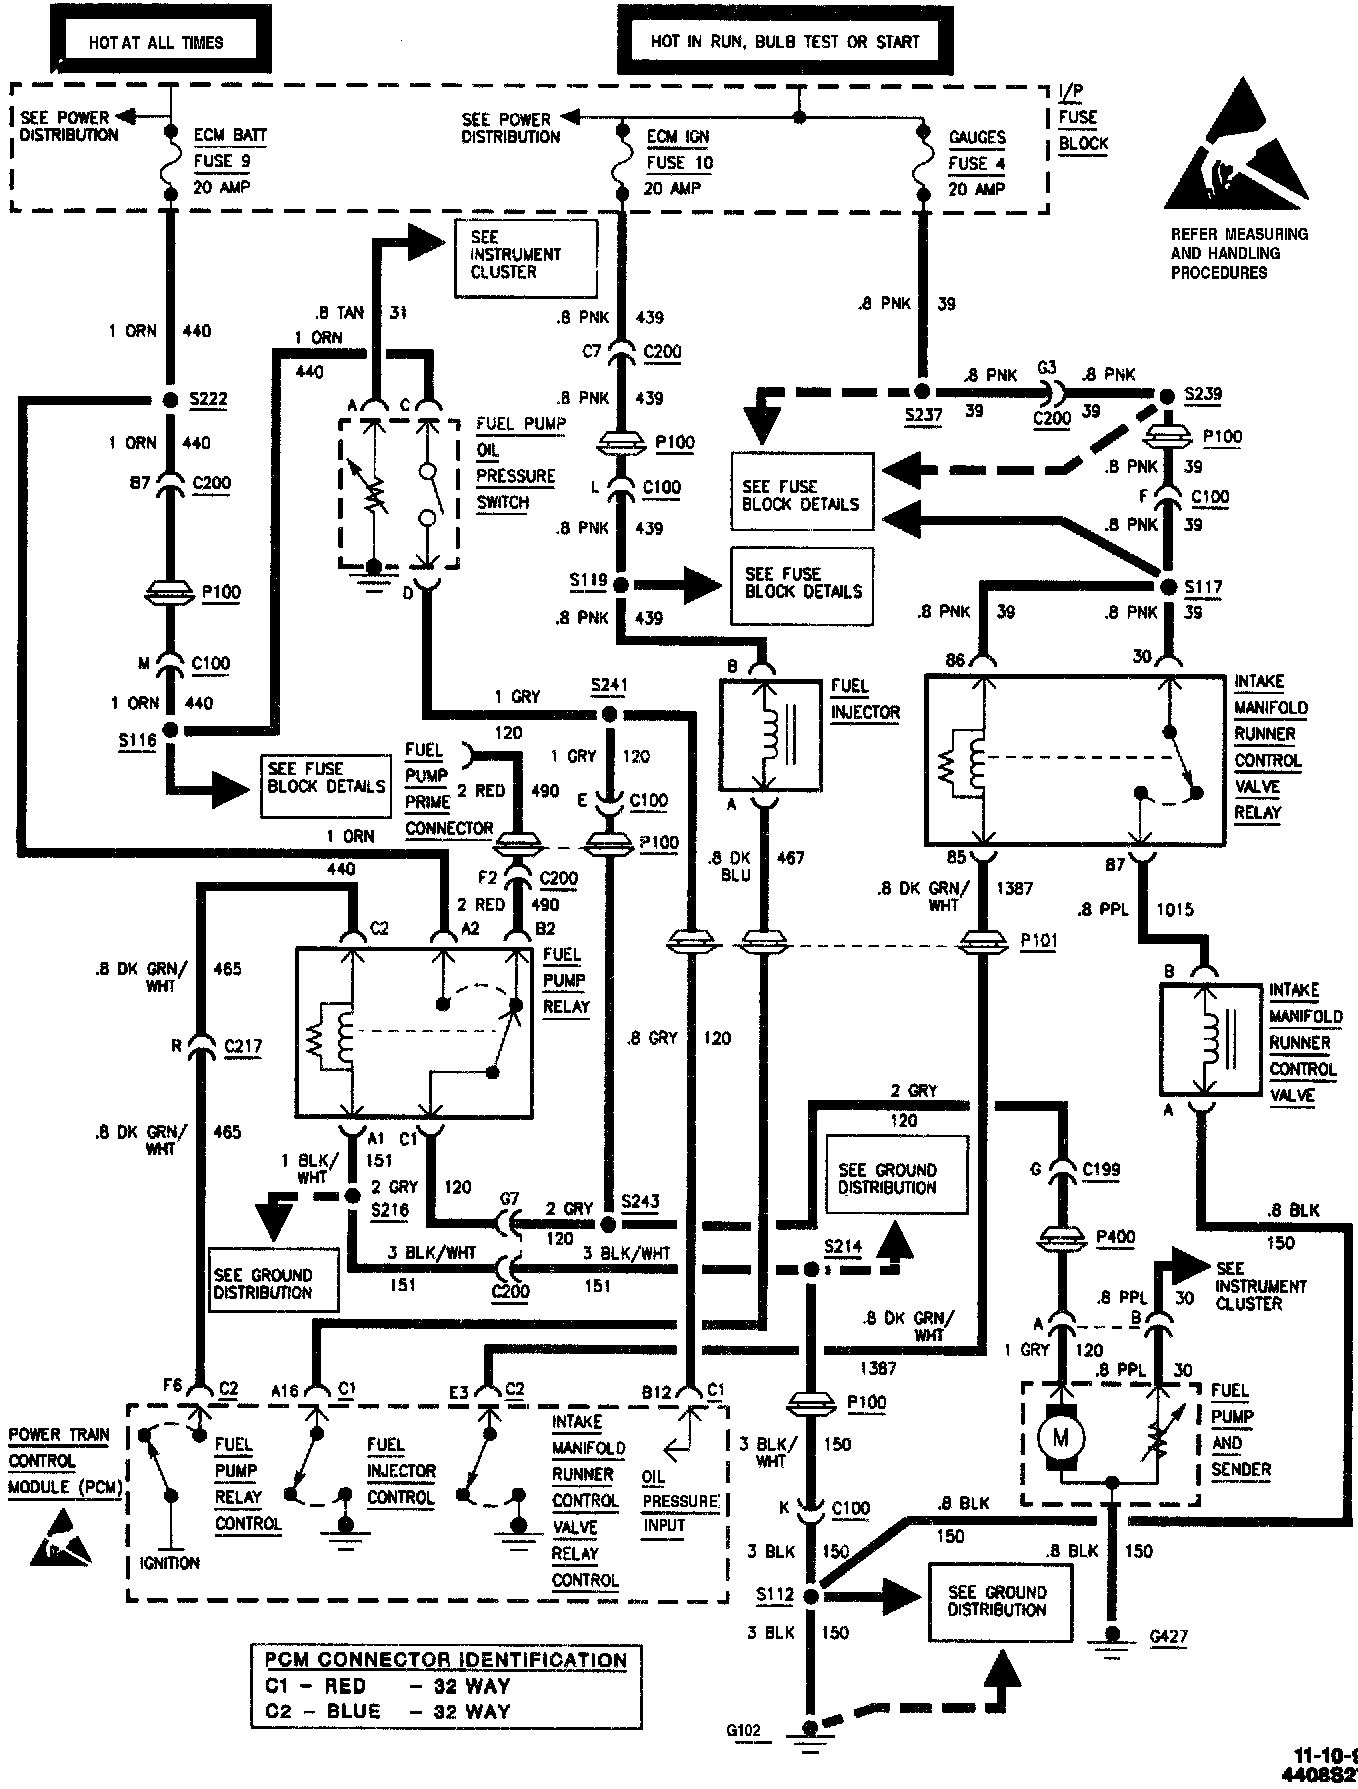 fuse diagram of a 1979 chevy pickup